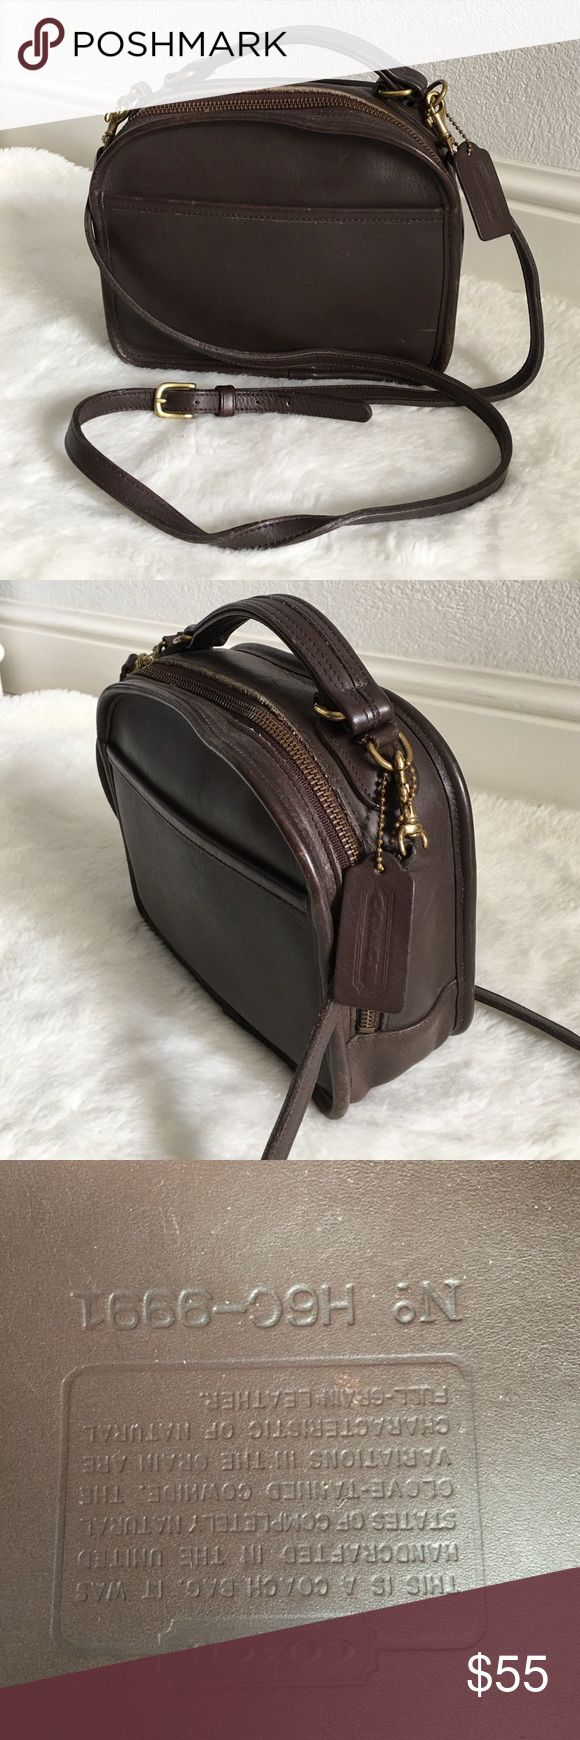 Vintage Coach Legacy Brown Crossbody Bag Vintage Coach Legacy Brown Crossbody Bag. Rare! Signs of wear and patina normal for a bag this age. Creed N. H6C-9991. Please look at pictures for better reference. Happy shopping!! Coach Bags Crossbody Bags